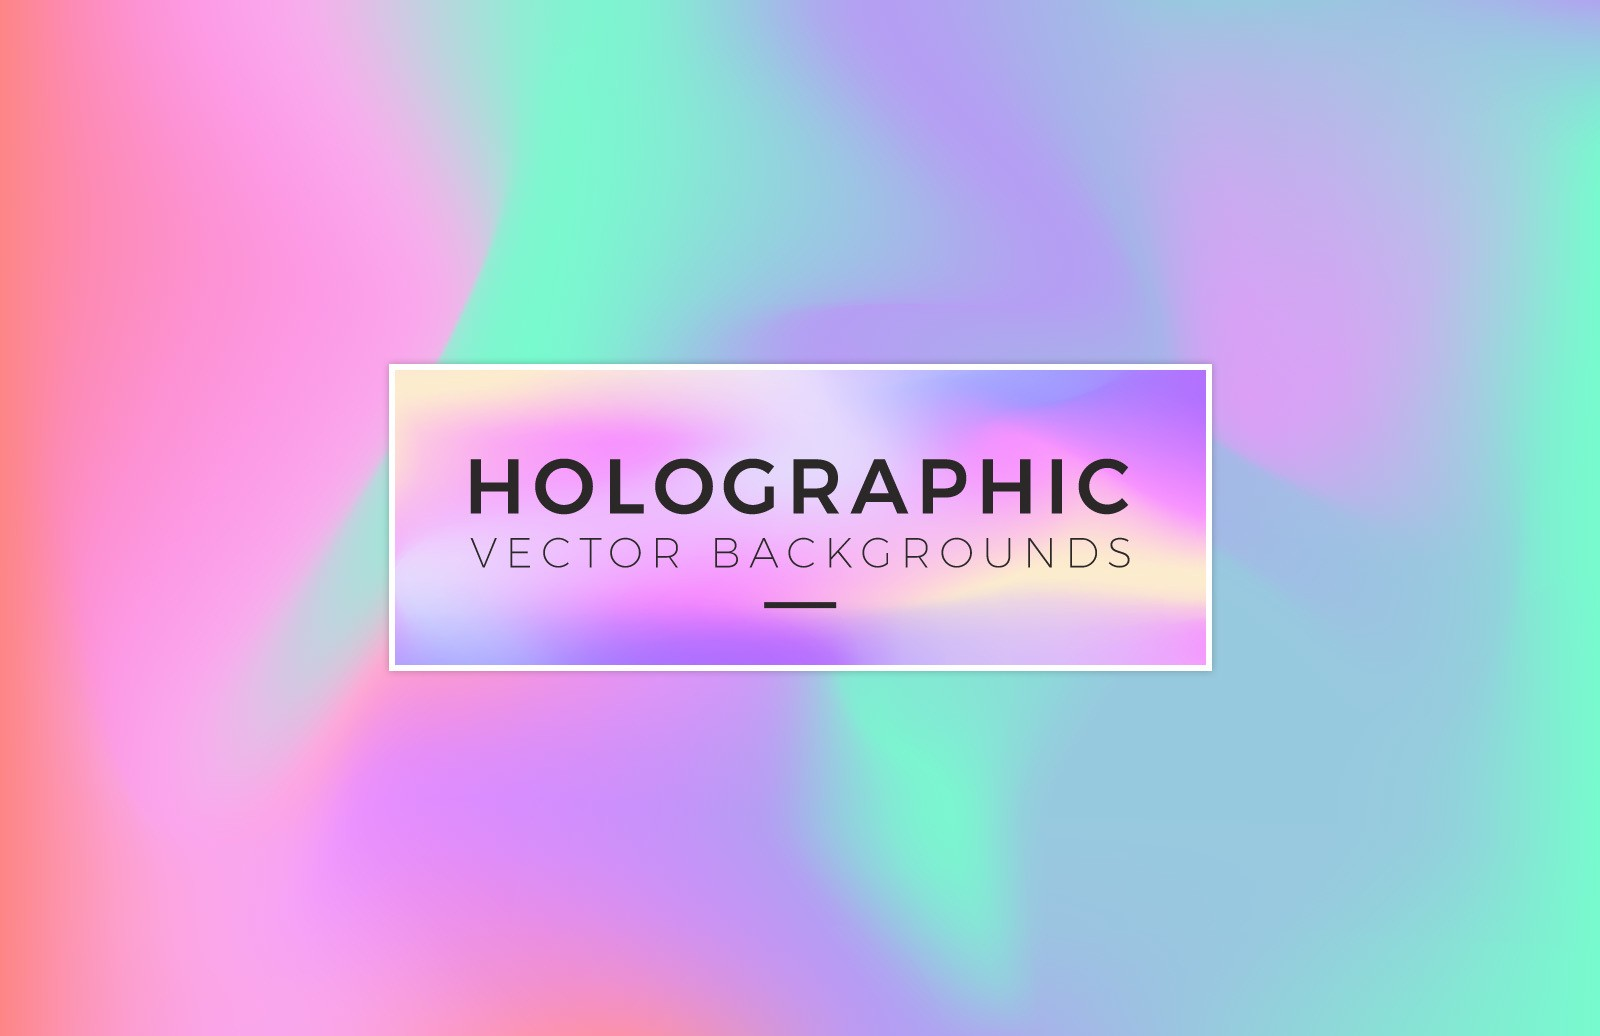 Holographic Vector Backgrounds